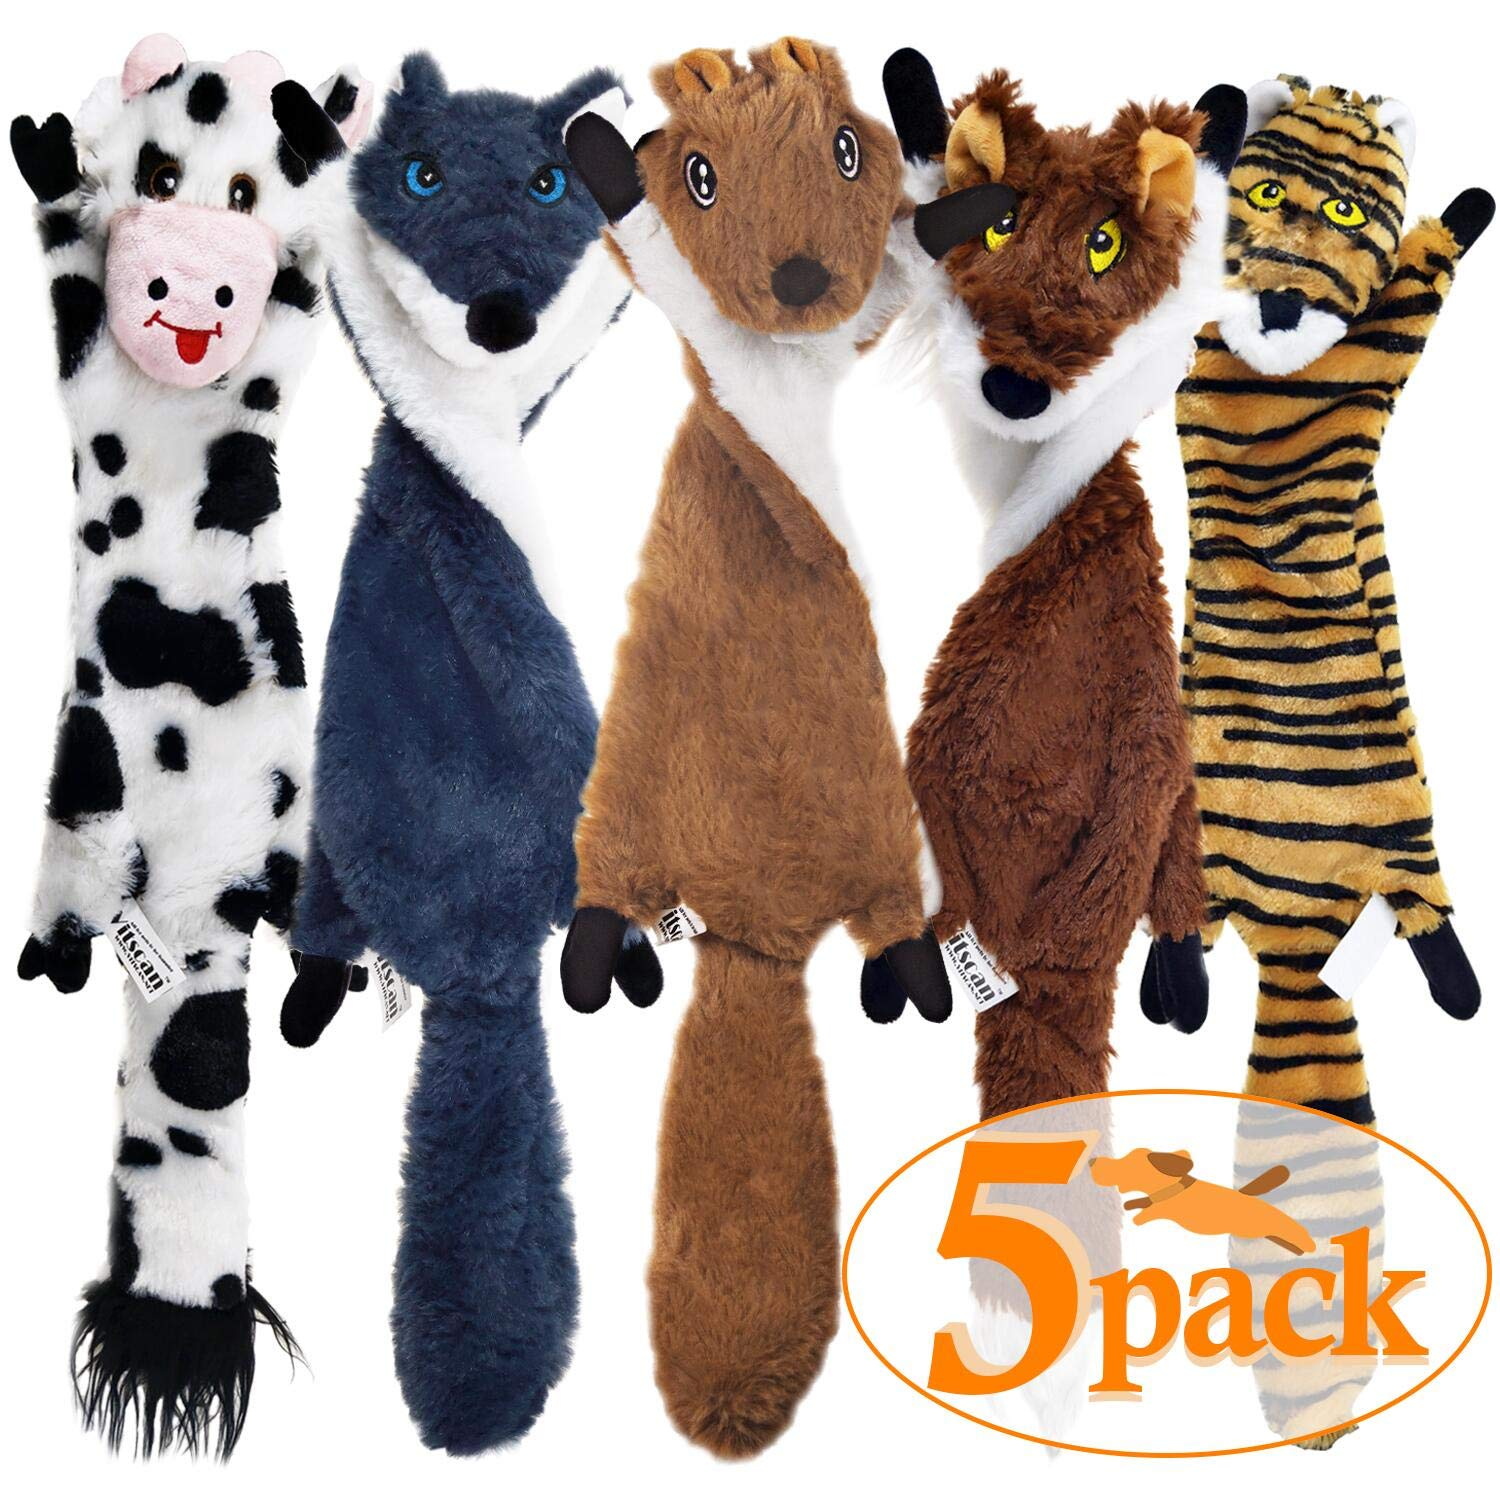 SHARLOVY Dog Squeaky Toys 5 Pack, Pet Toys Crinkle Dog Toy No Stuffing Animals Dog Plush Toy Dog Chew Toy for Large Dogs and Medium Dogs Squeeky Doggie Toys